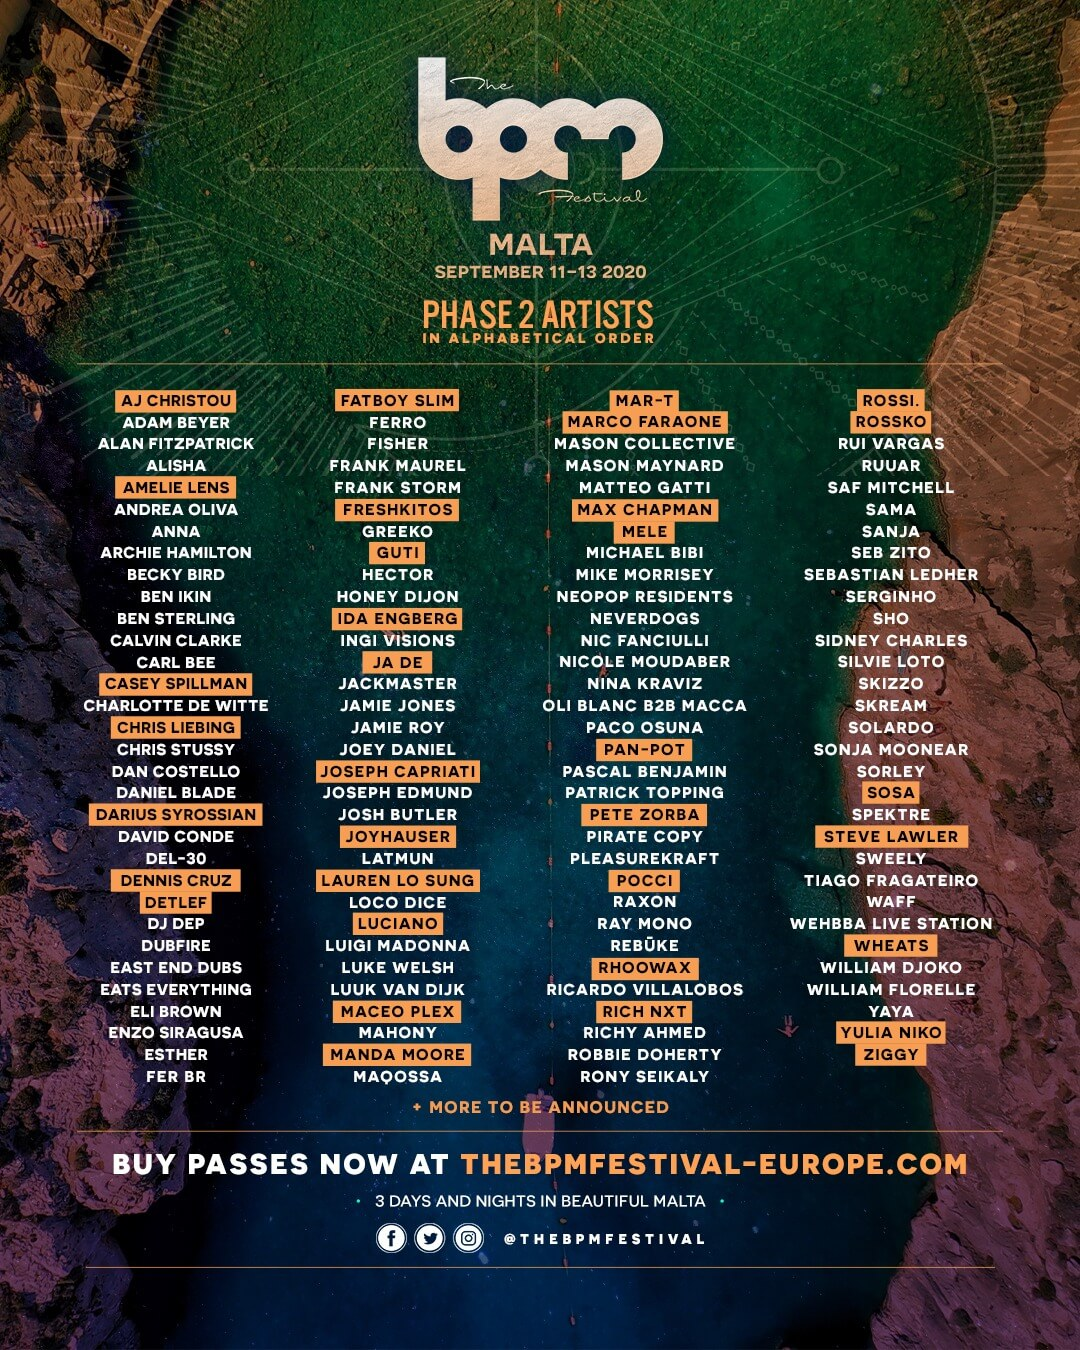 The BPM Festival Malta is looking to attract thousands of party-goers with this massive lineup